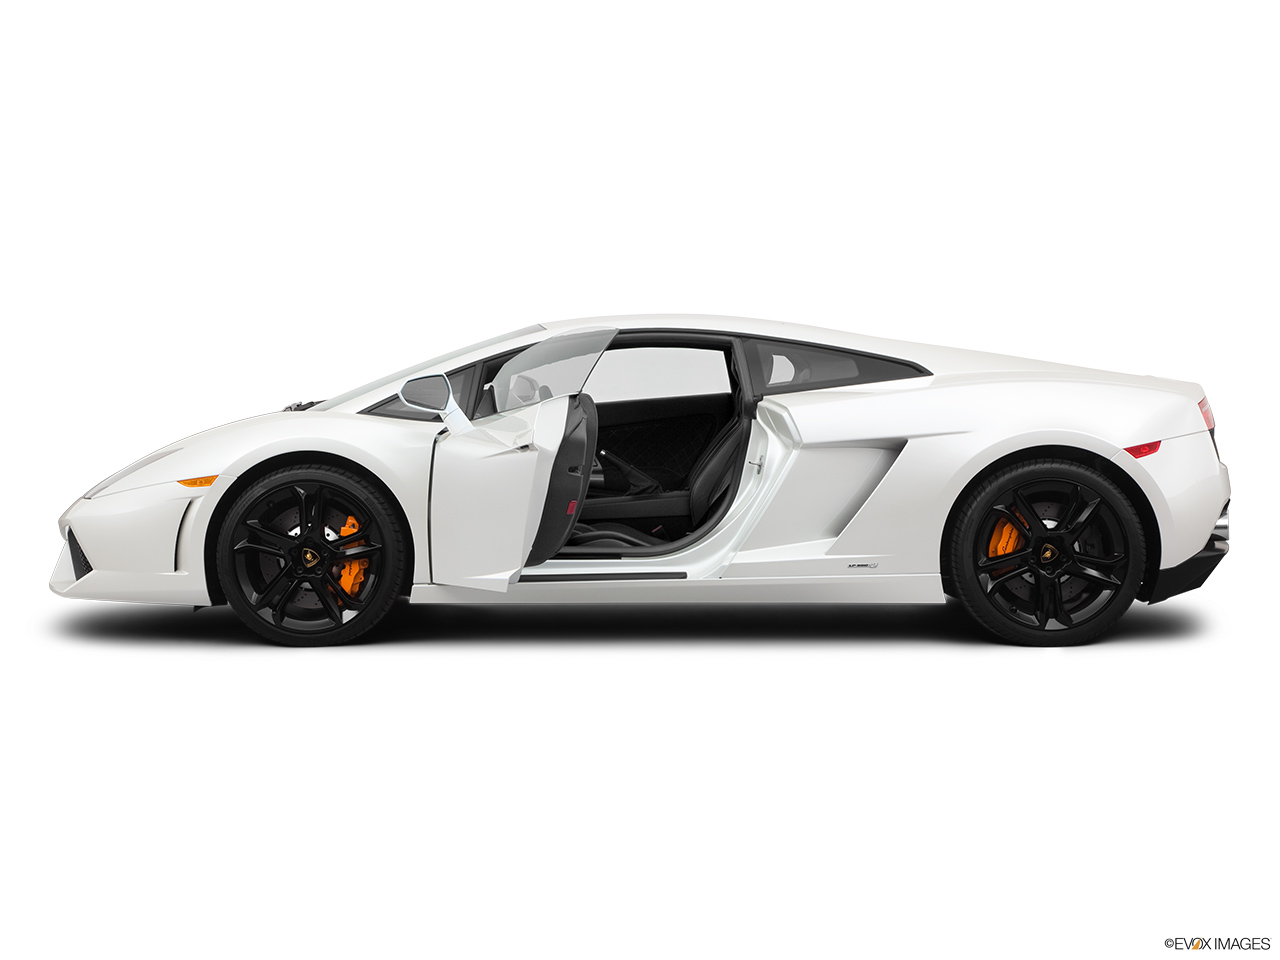 2014 Lamborghini Gallardo Coupe Lp560 4 Coupe Front Angle View